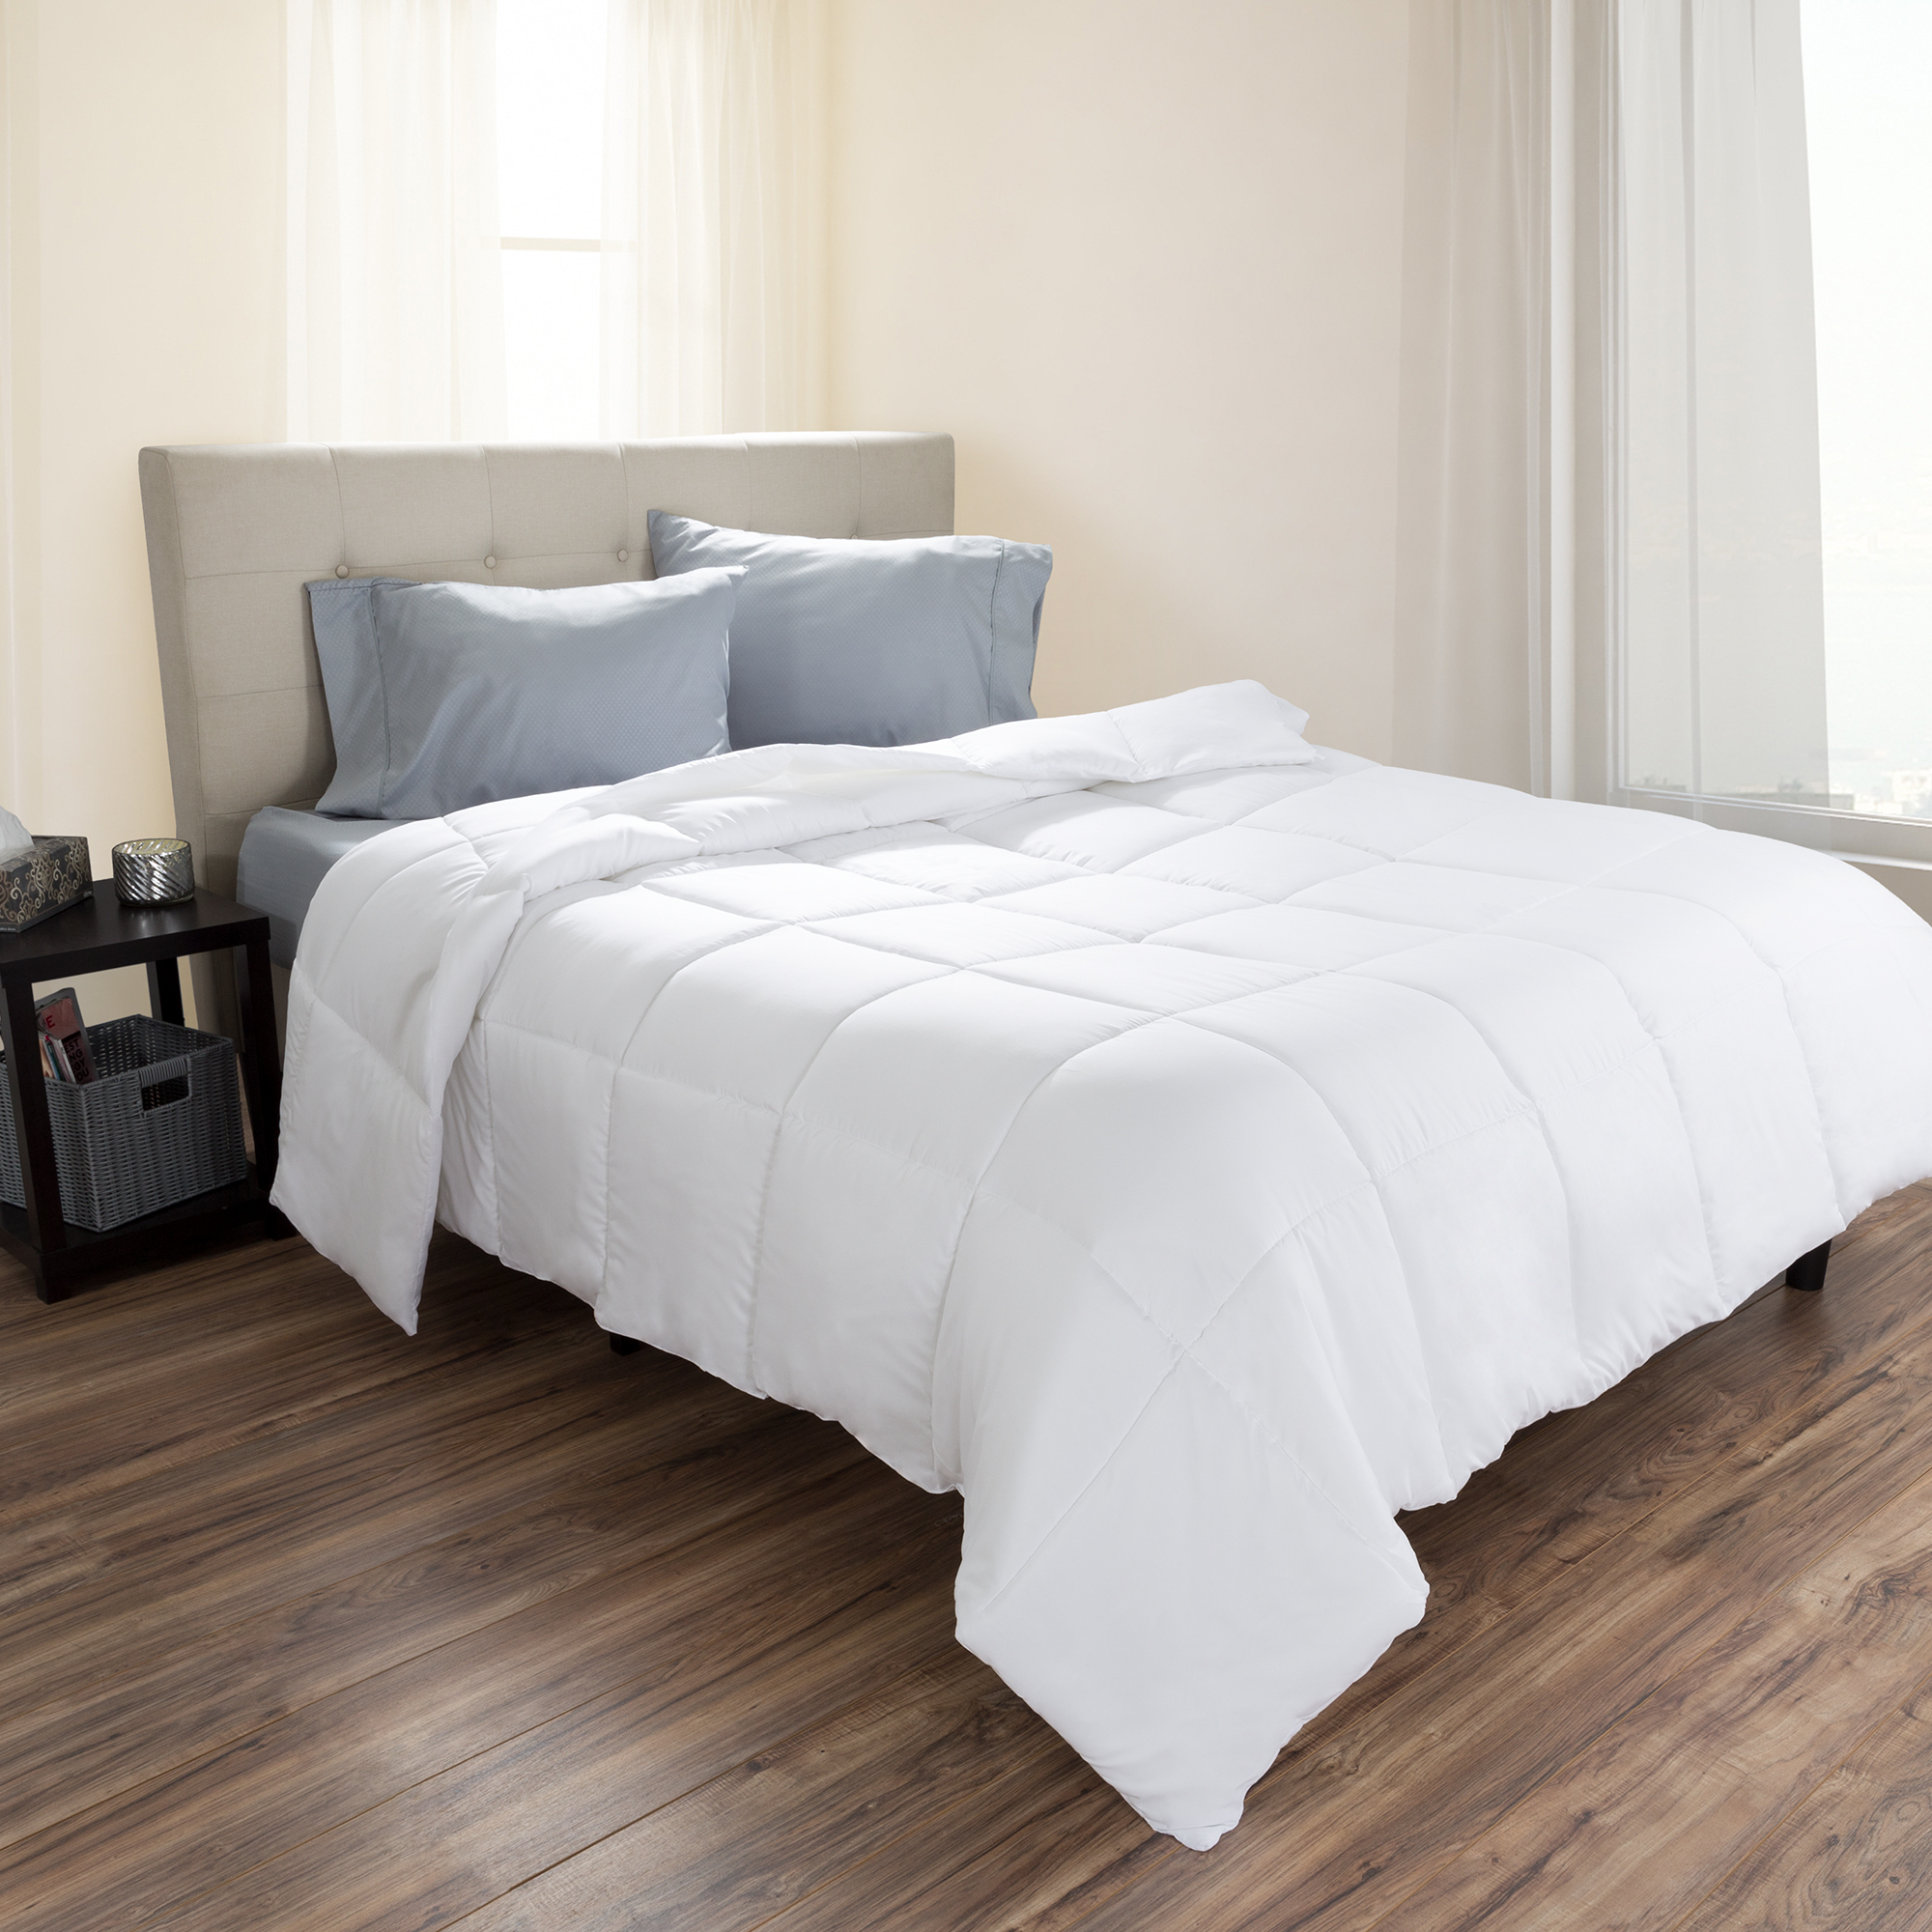 White Goose Down Alternative Comforter, Hypo-Allergenic, Quilted Box Stitched, All Season Bed Comforter by Somerset Home